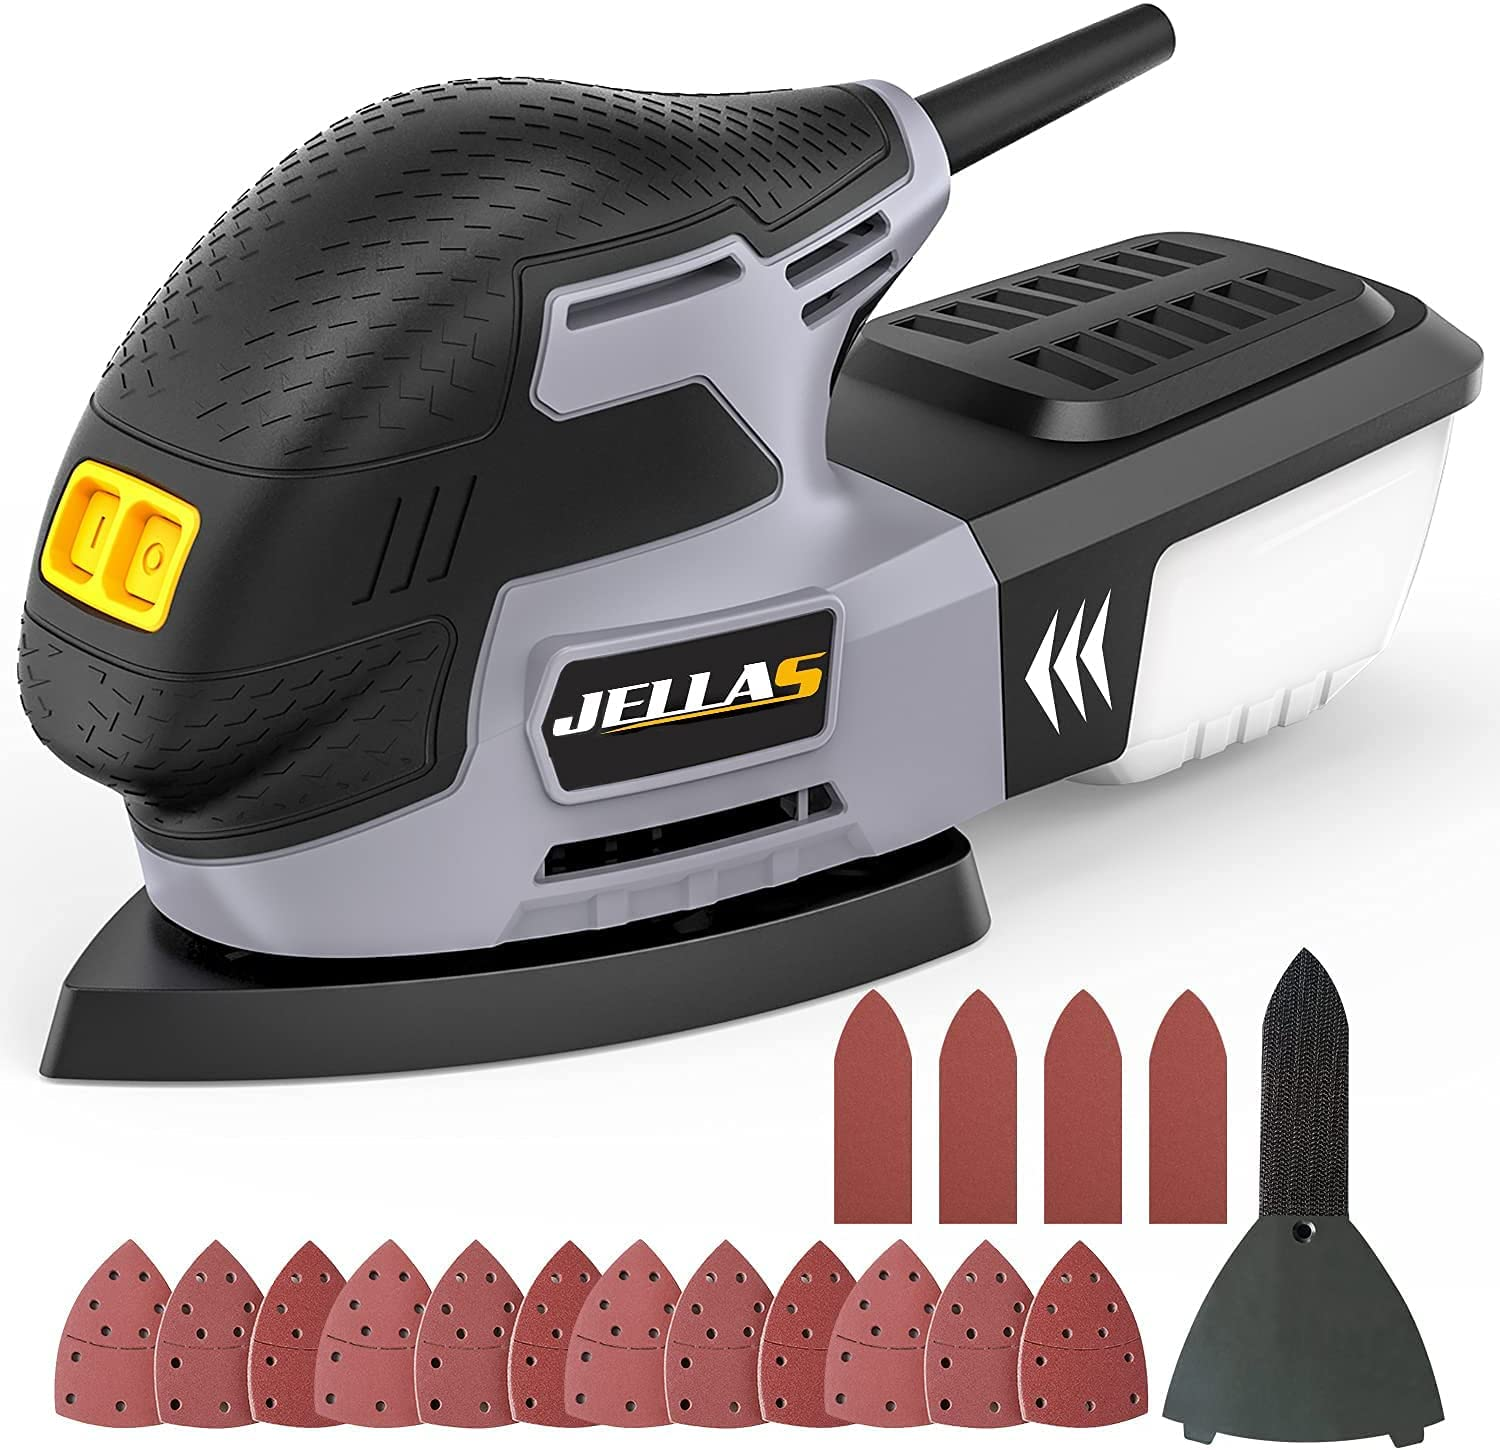 Detail Mouse Sander - JELLAS Compact Sander Machine for Wood, 13,000 RPM Sanders with Dust Collection, 220W Sanding Machine 12PCS Standard Sandpapers, Sanding Pads Included, MS01-SD